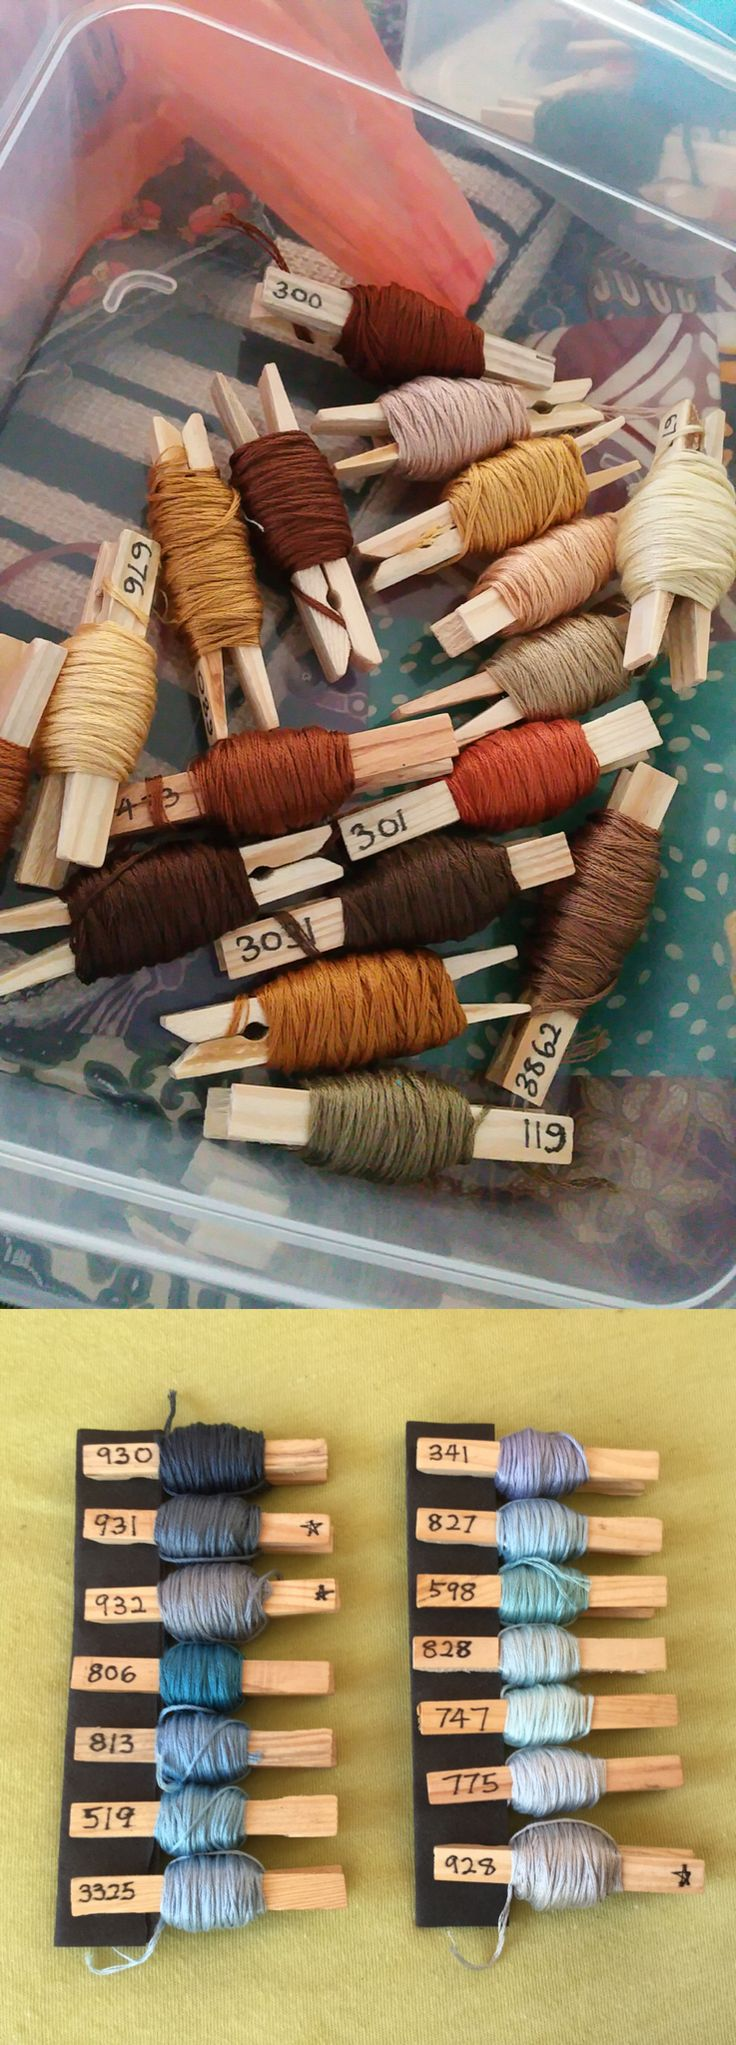 Keep embroidery threads in order by labeling their color codes on clothes pegs.                                                                                                                                                                                 More